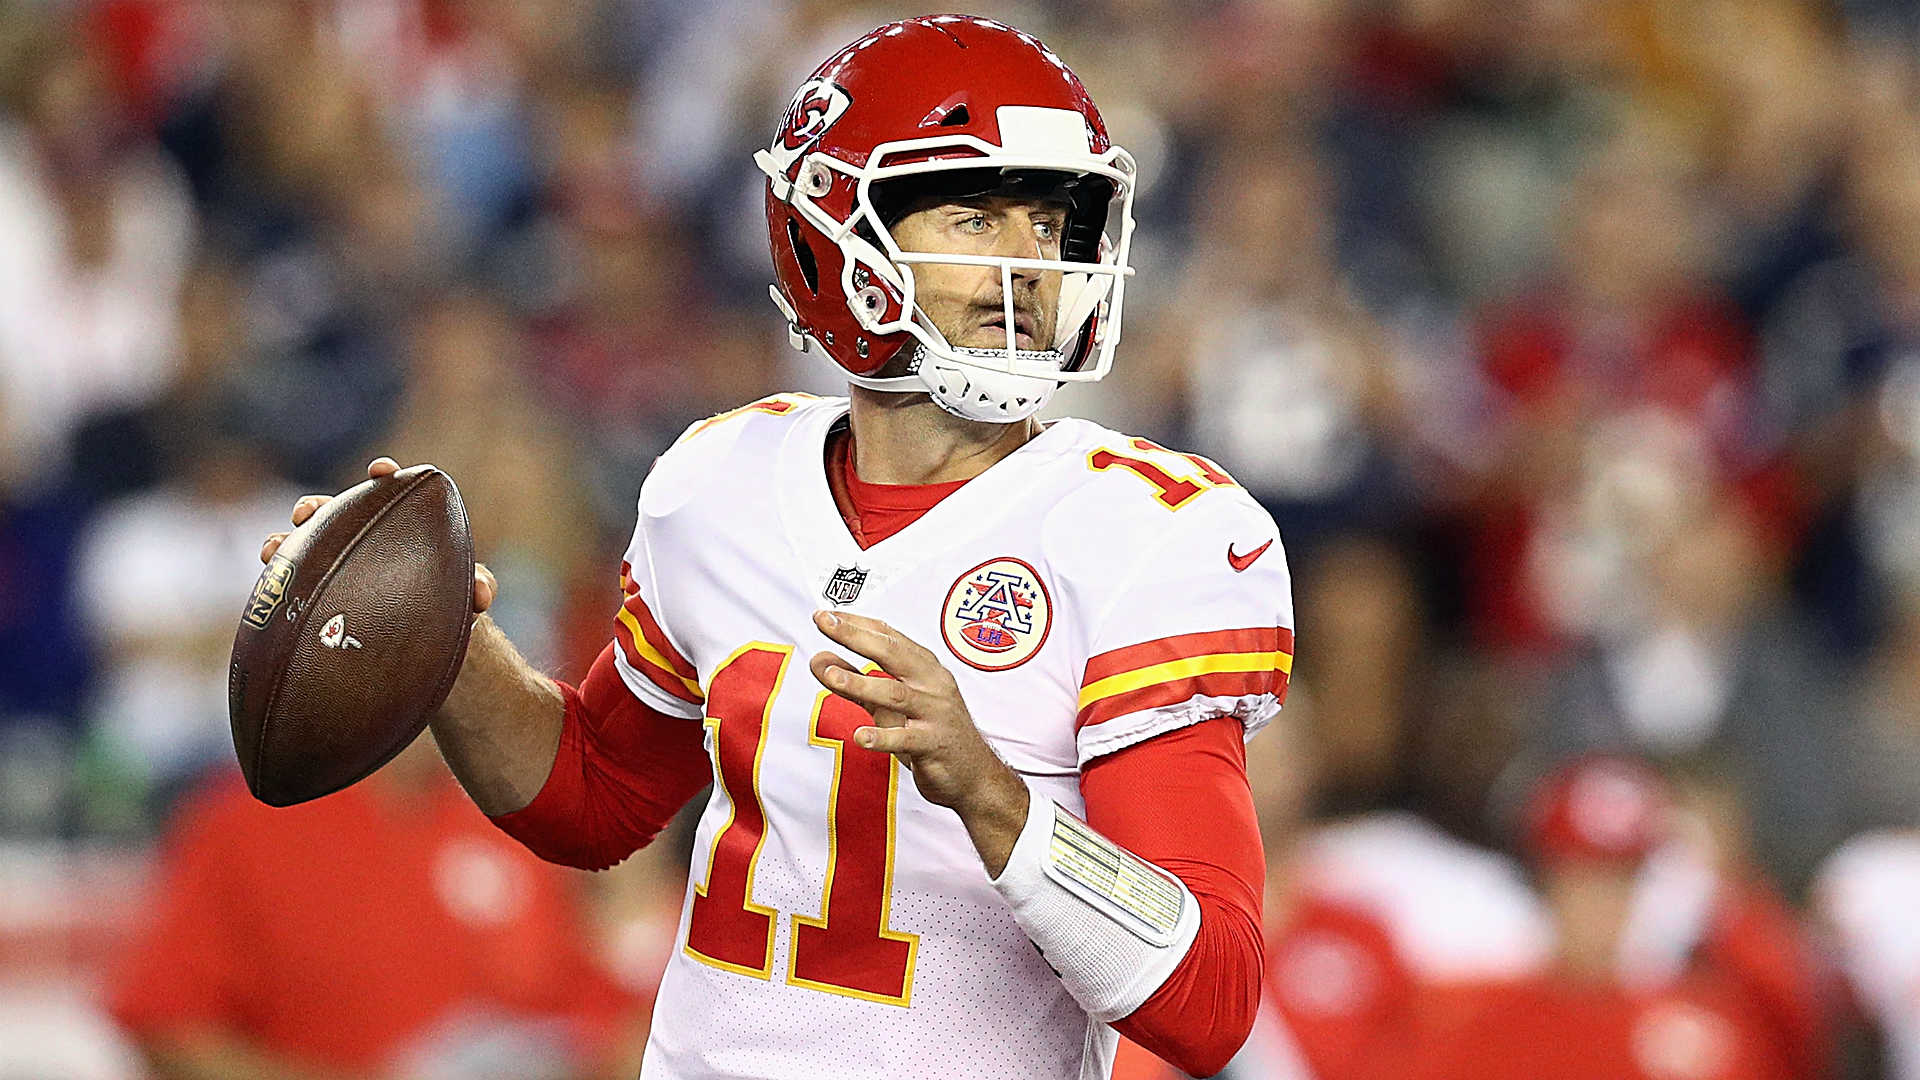 Chiefs agree to trade Alex Smith to Washington, report says